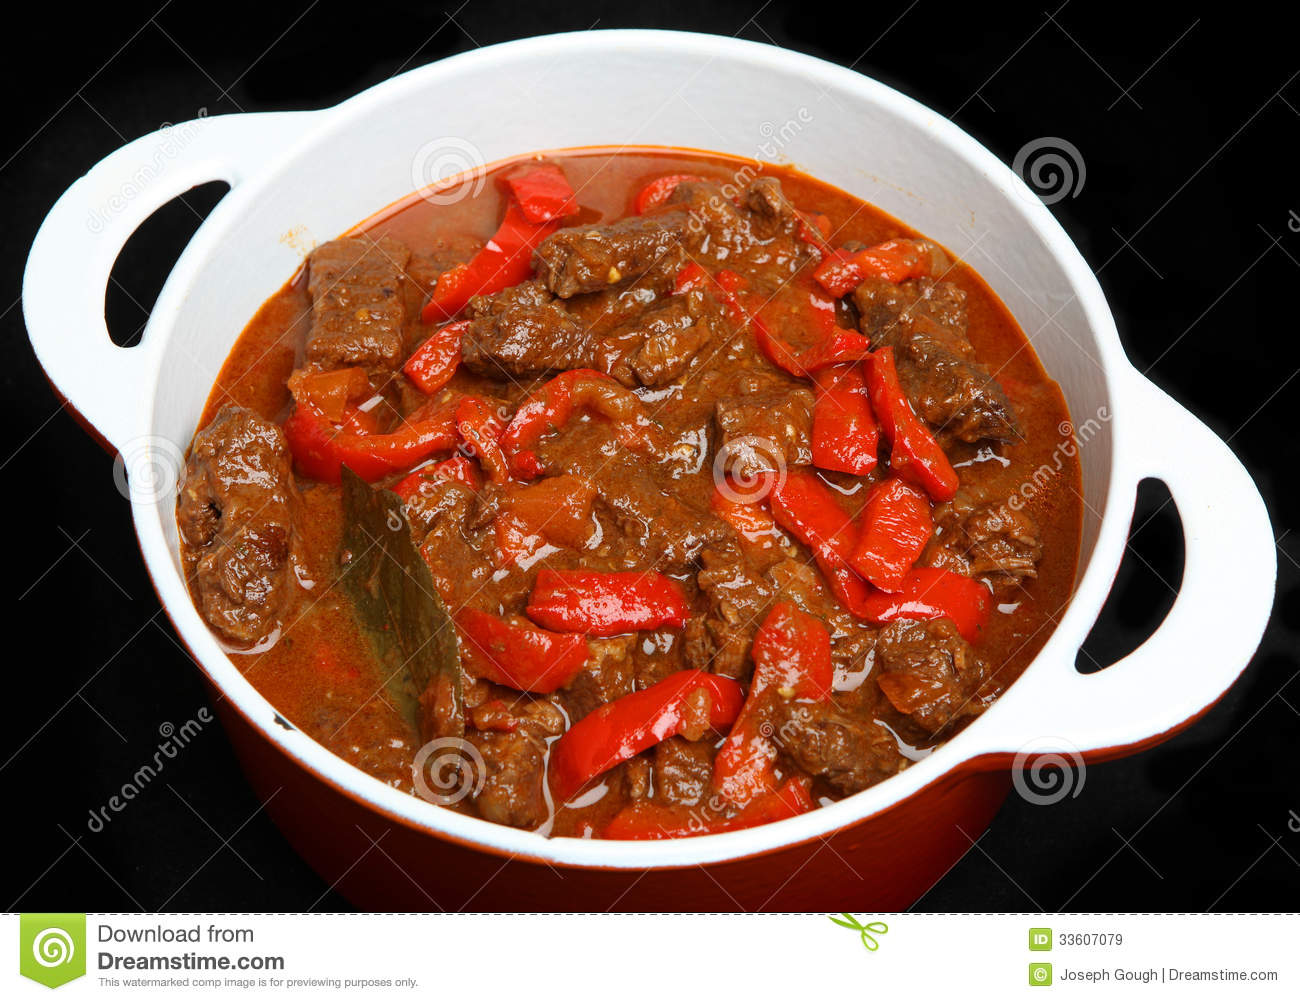 Hungarian Goulash Beef Stew Royalty Free Stock Images - Image ...